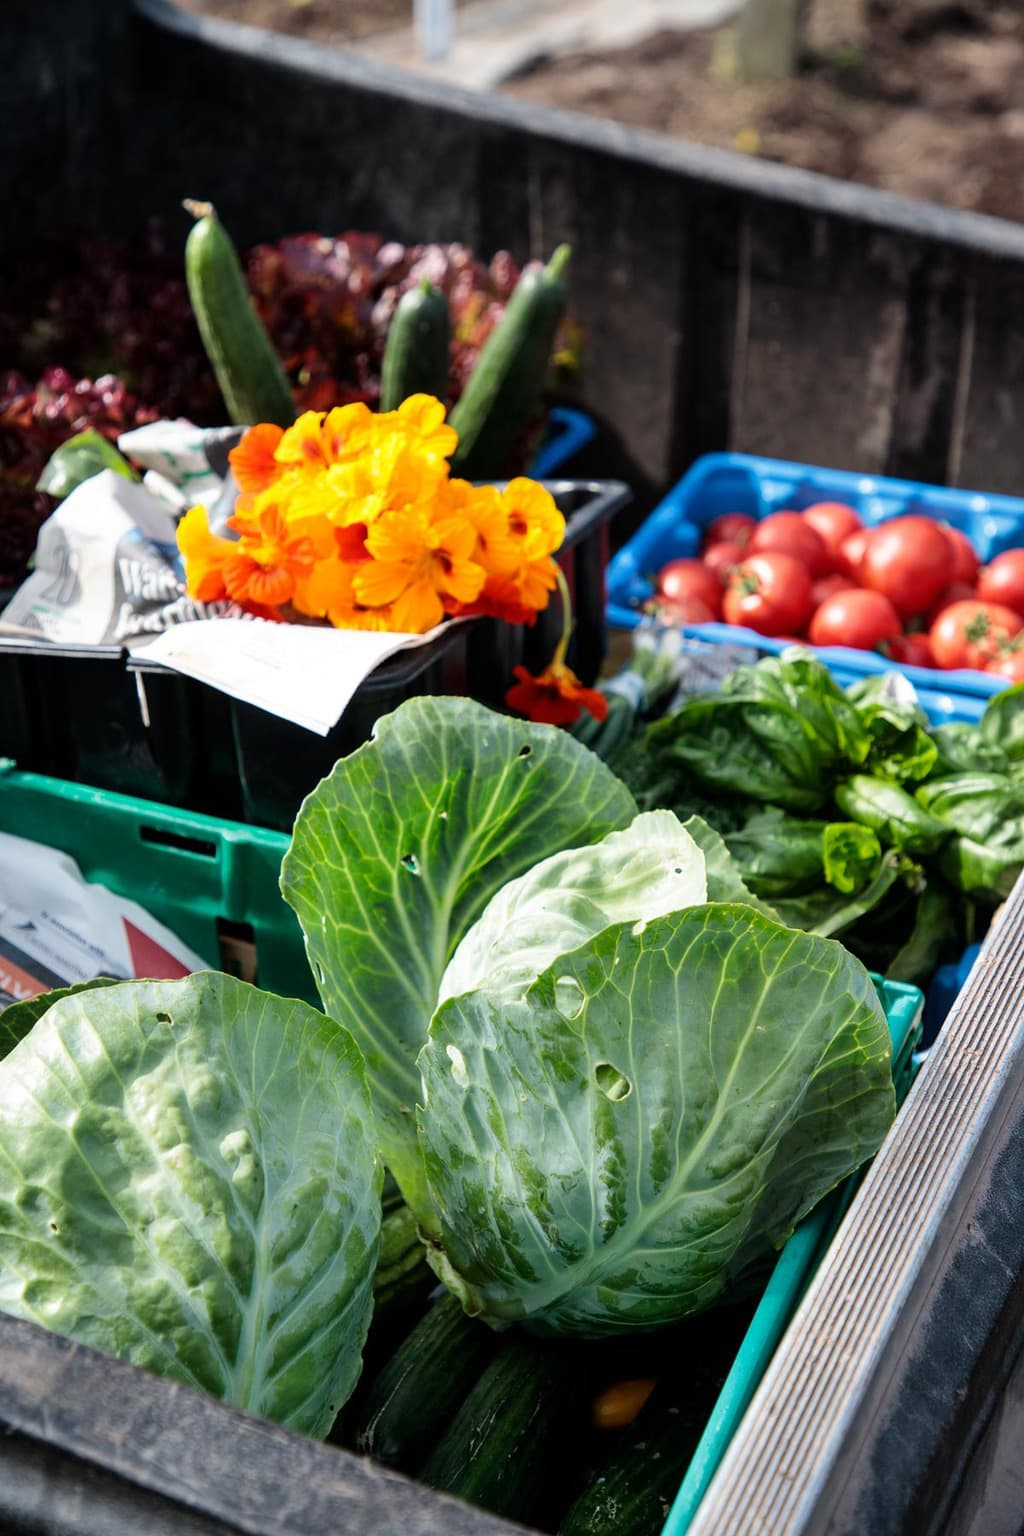 Photo of vegetables and fresh flowers just harvested at the Ballymaloe Farms.